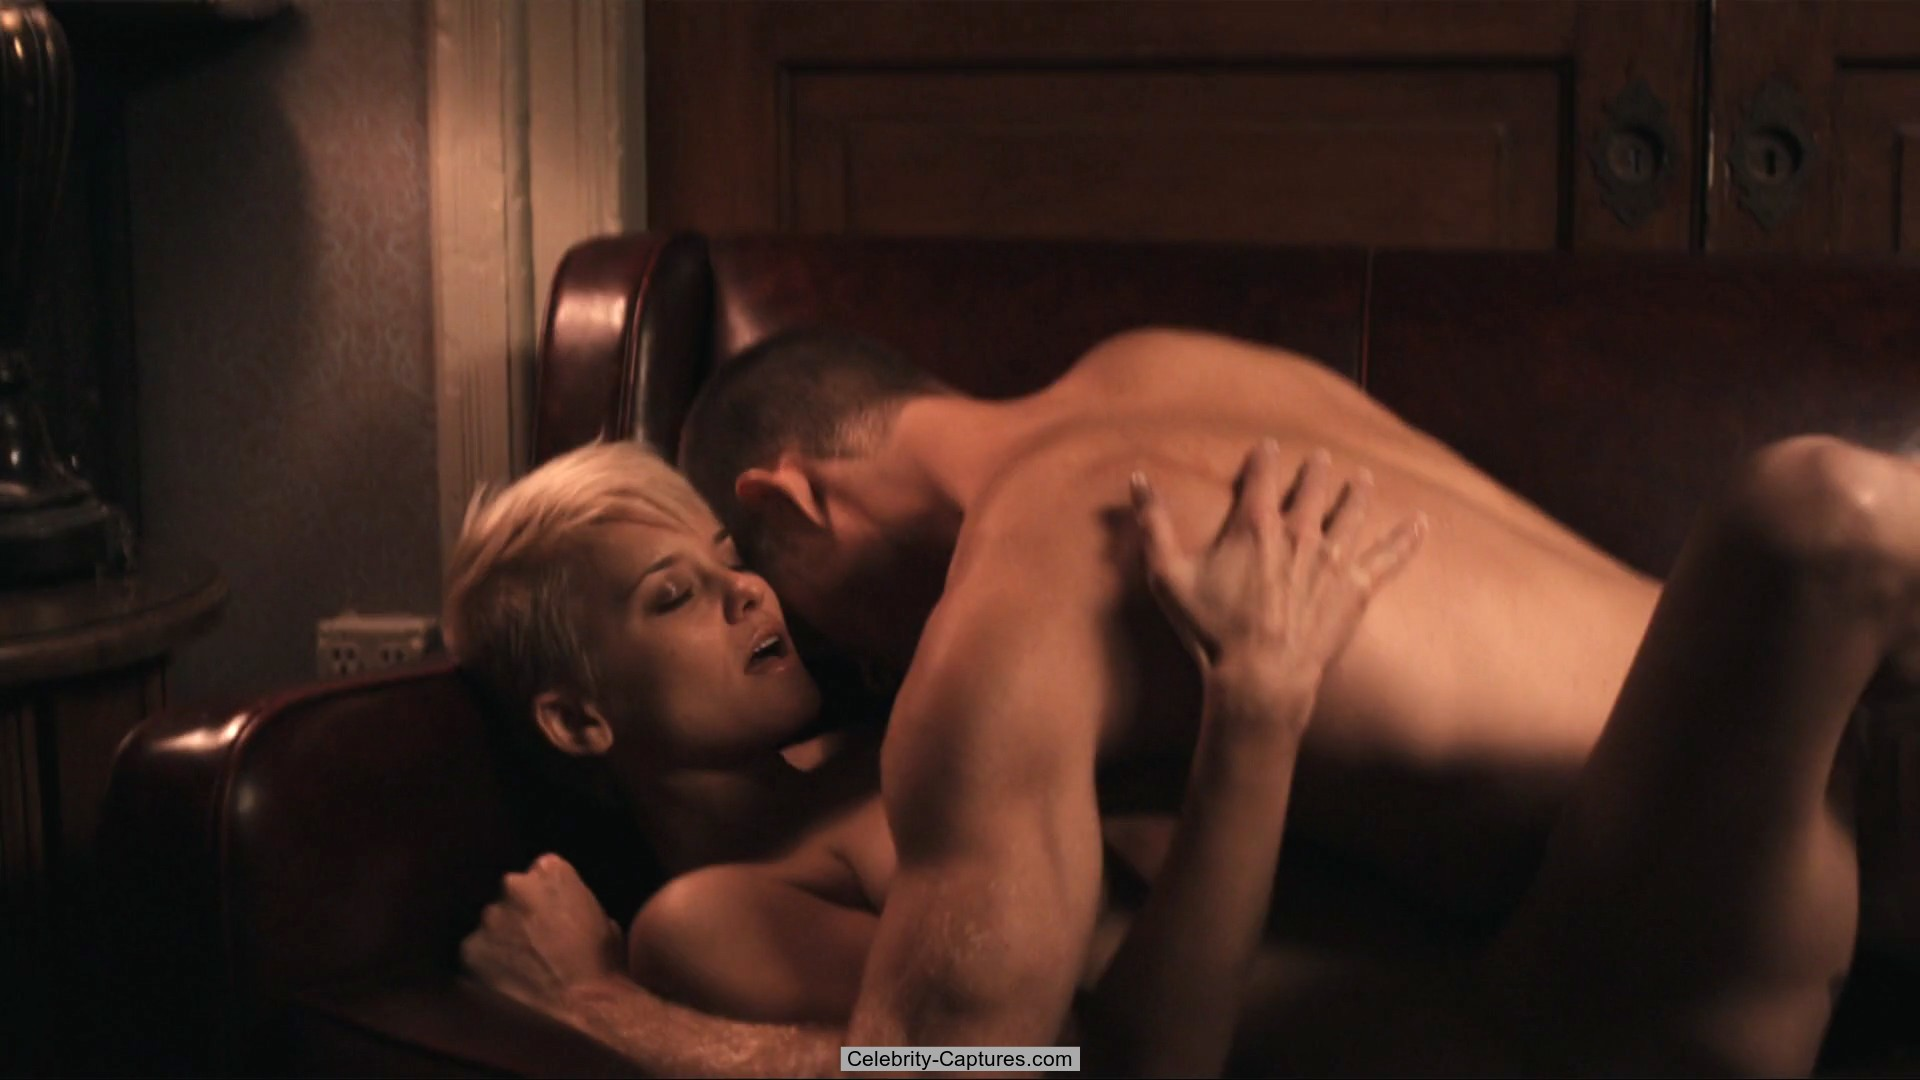 Melissa jones sex scene from butterfly effect 3 8